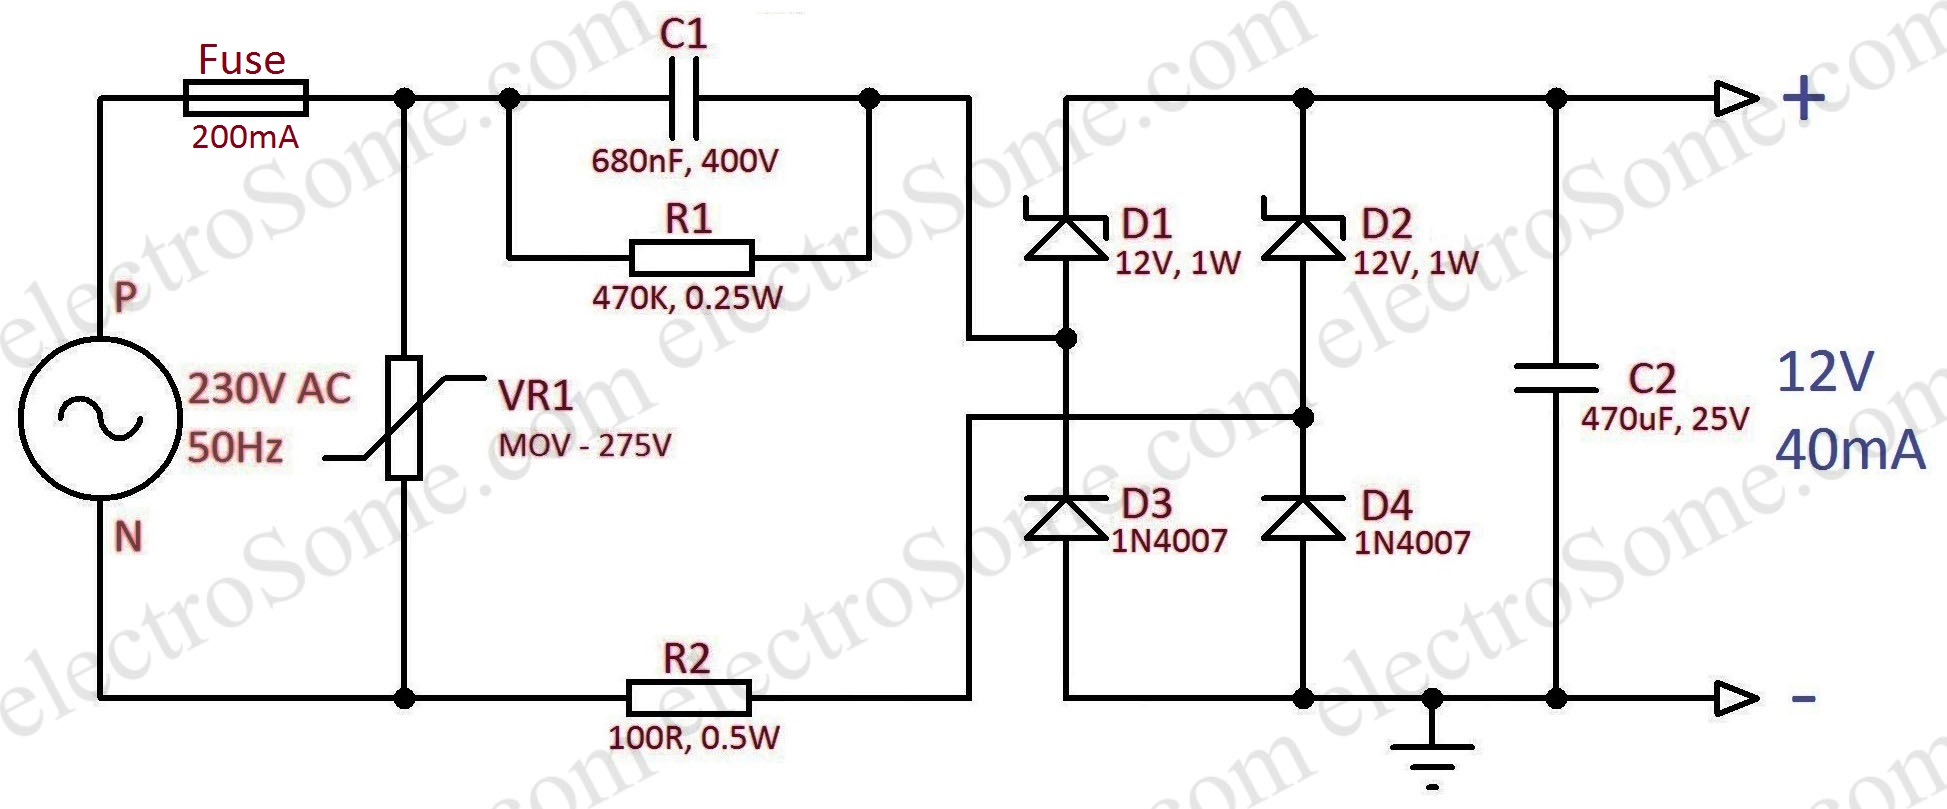 Automatic Night Lamp Using Ldr 741 Op Circuit Diagrams Transformerless Capacitor Power Supply 12v 40ma